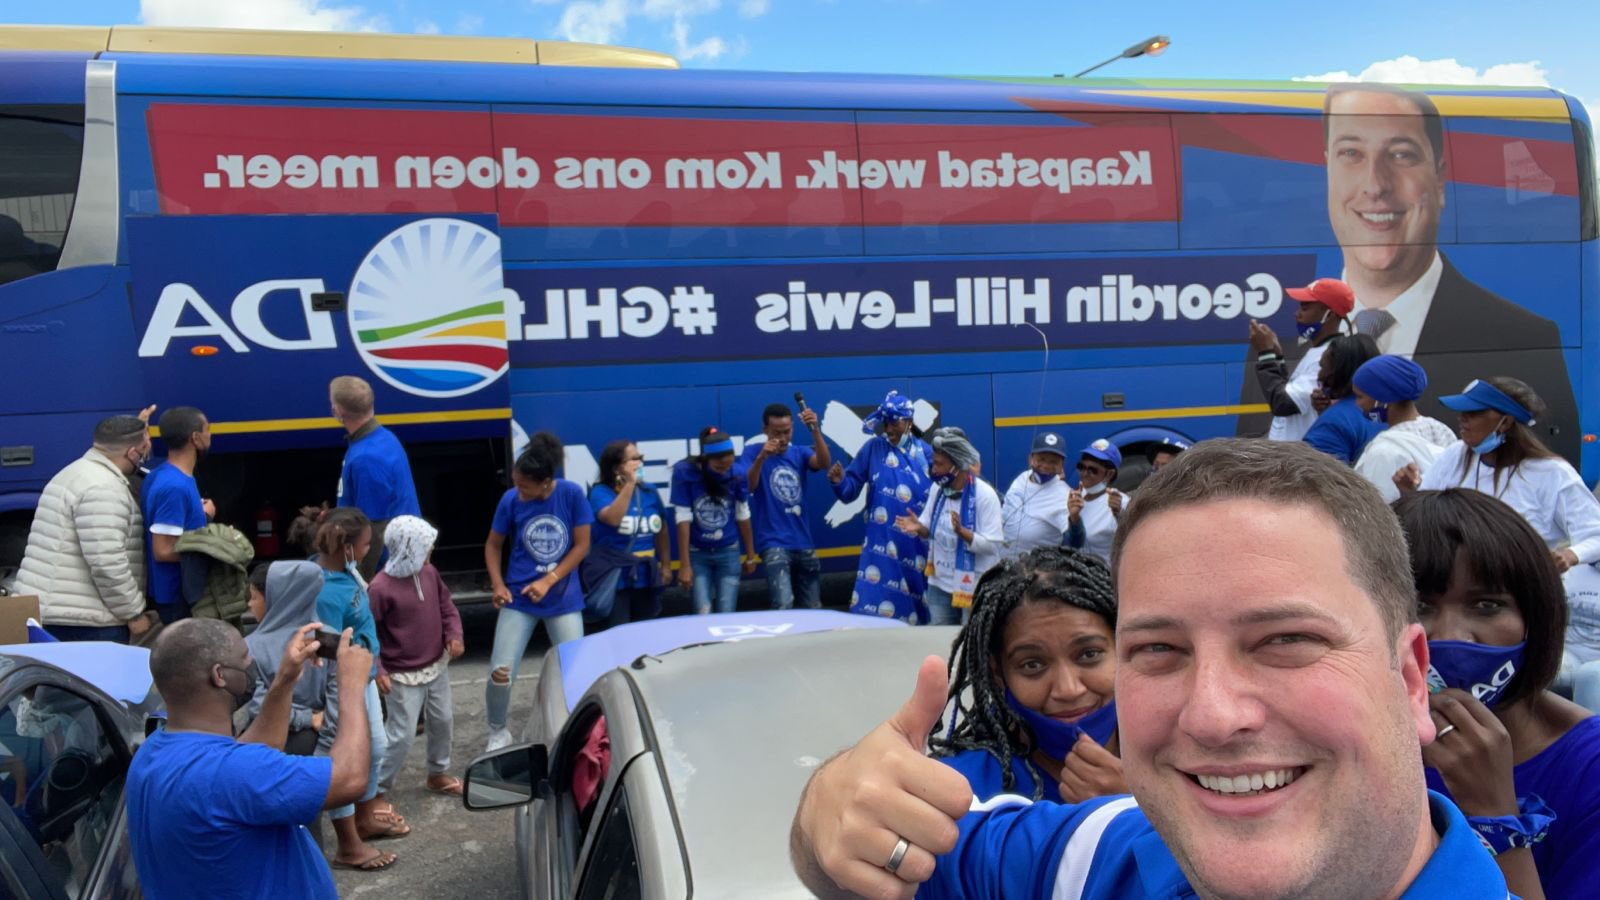 Get on the DA's battle bus to get more done in Cape Town!